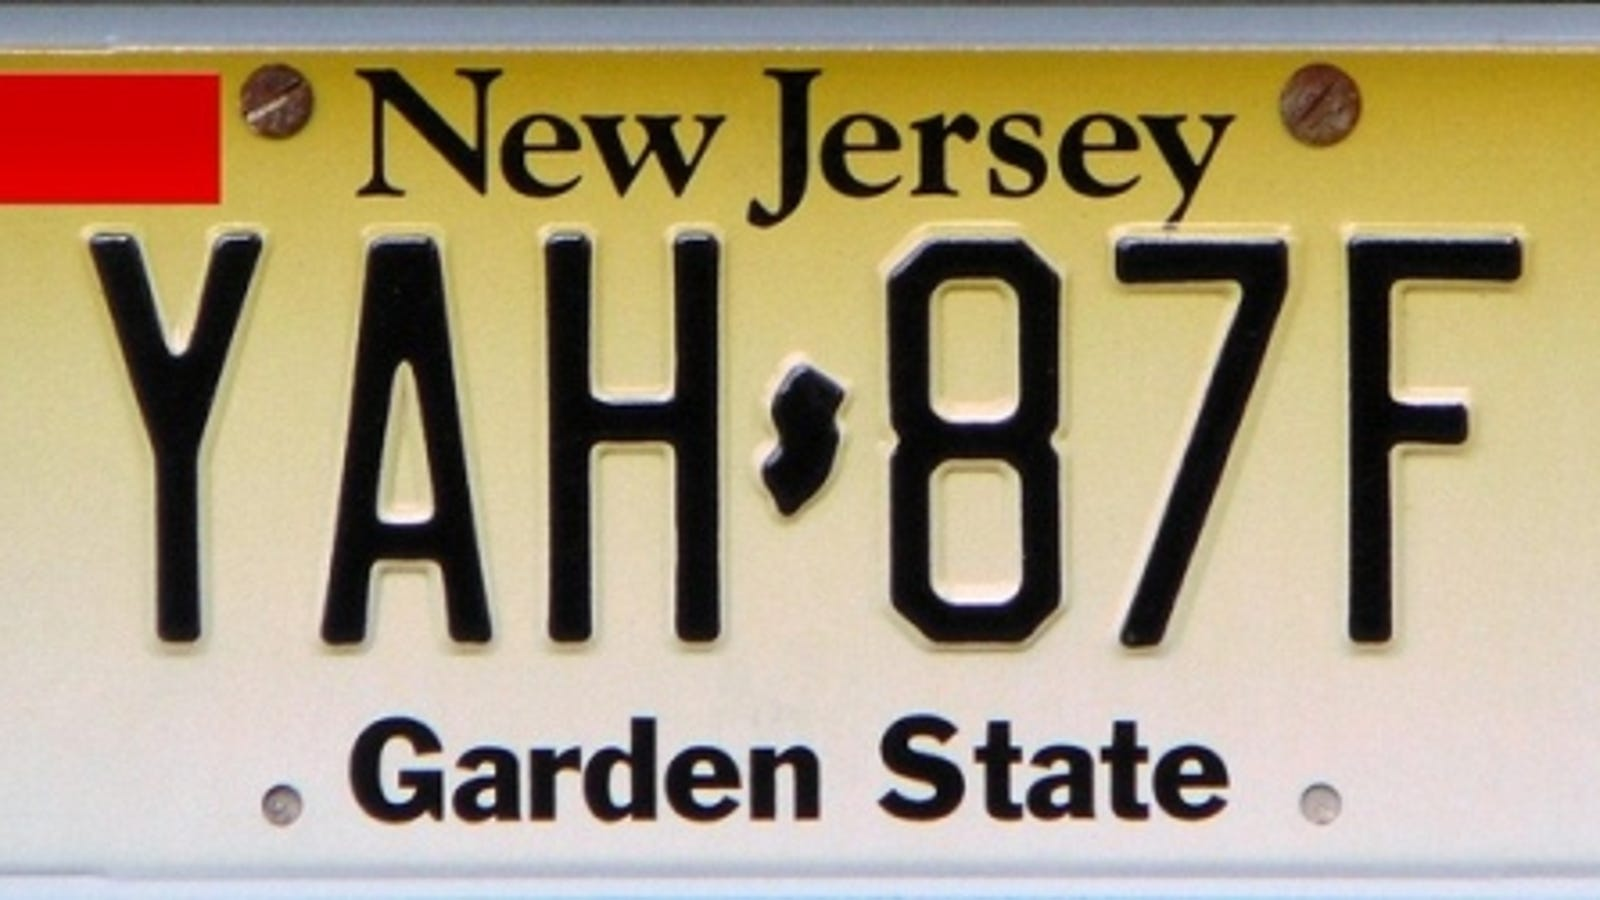 Probationary License Nj >> New Jersey Now Requires Pointless Red Sticker For Probationary Drivers